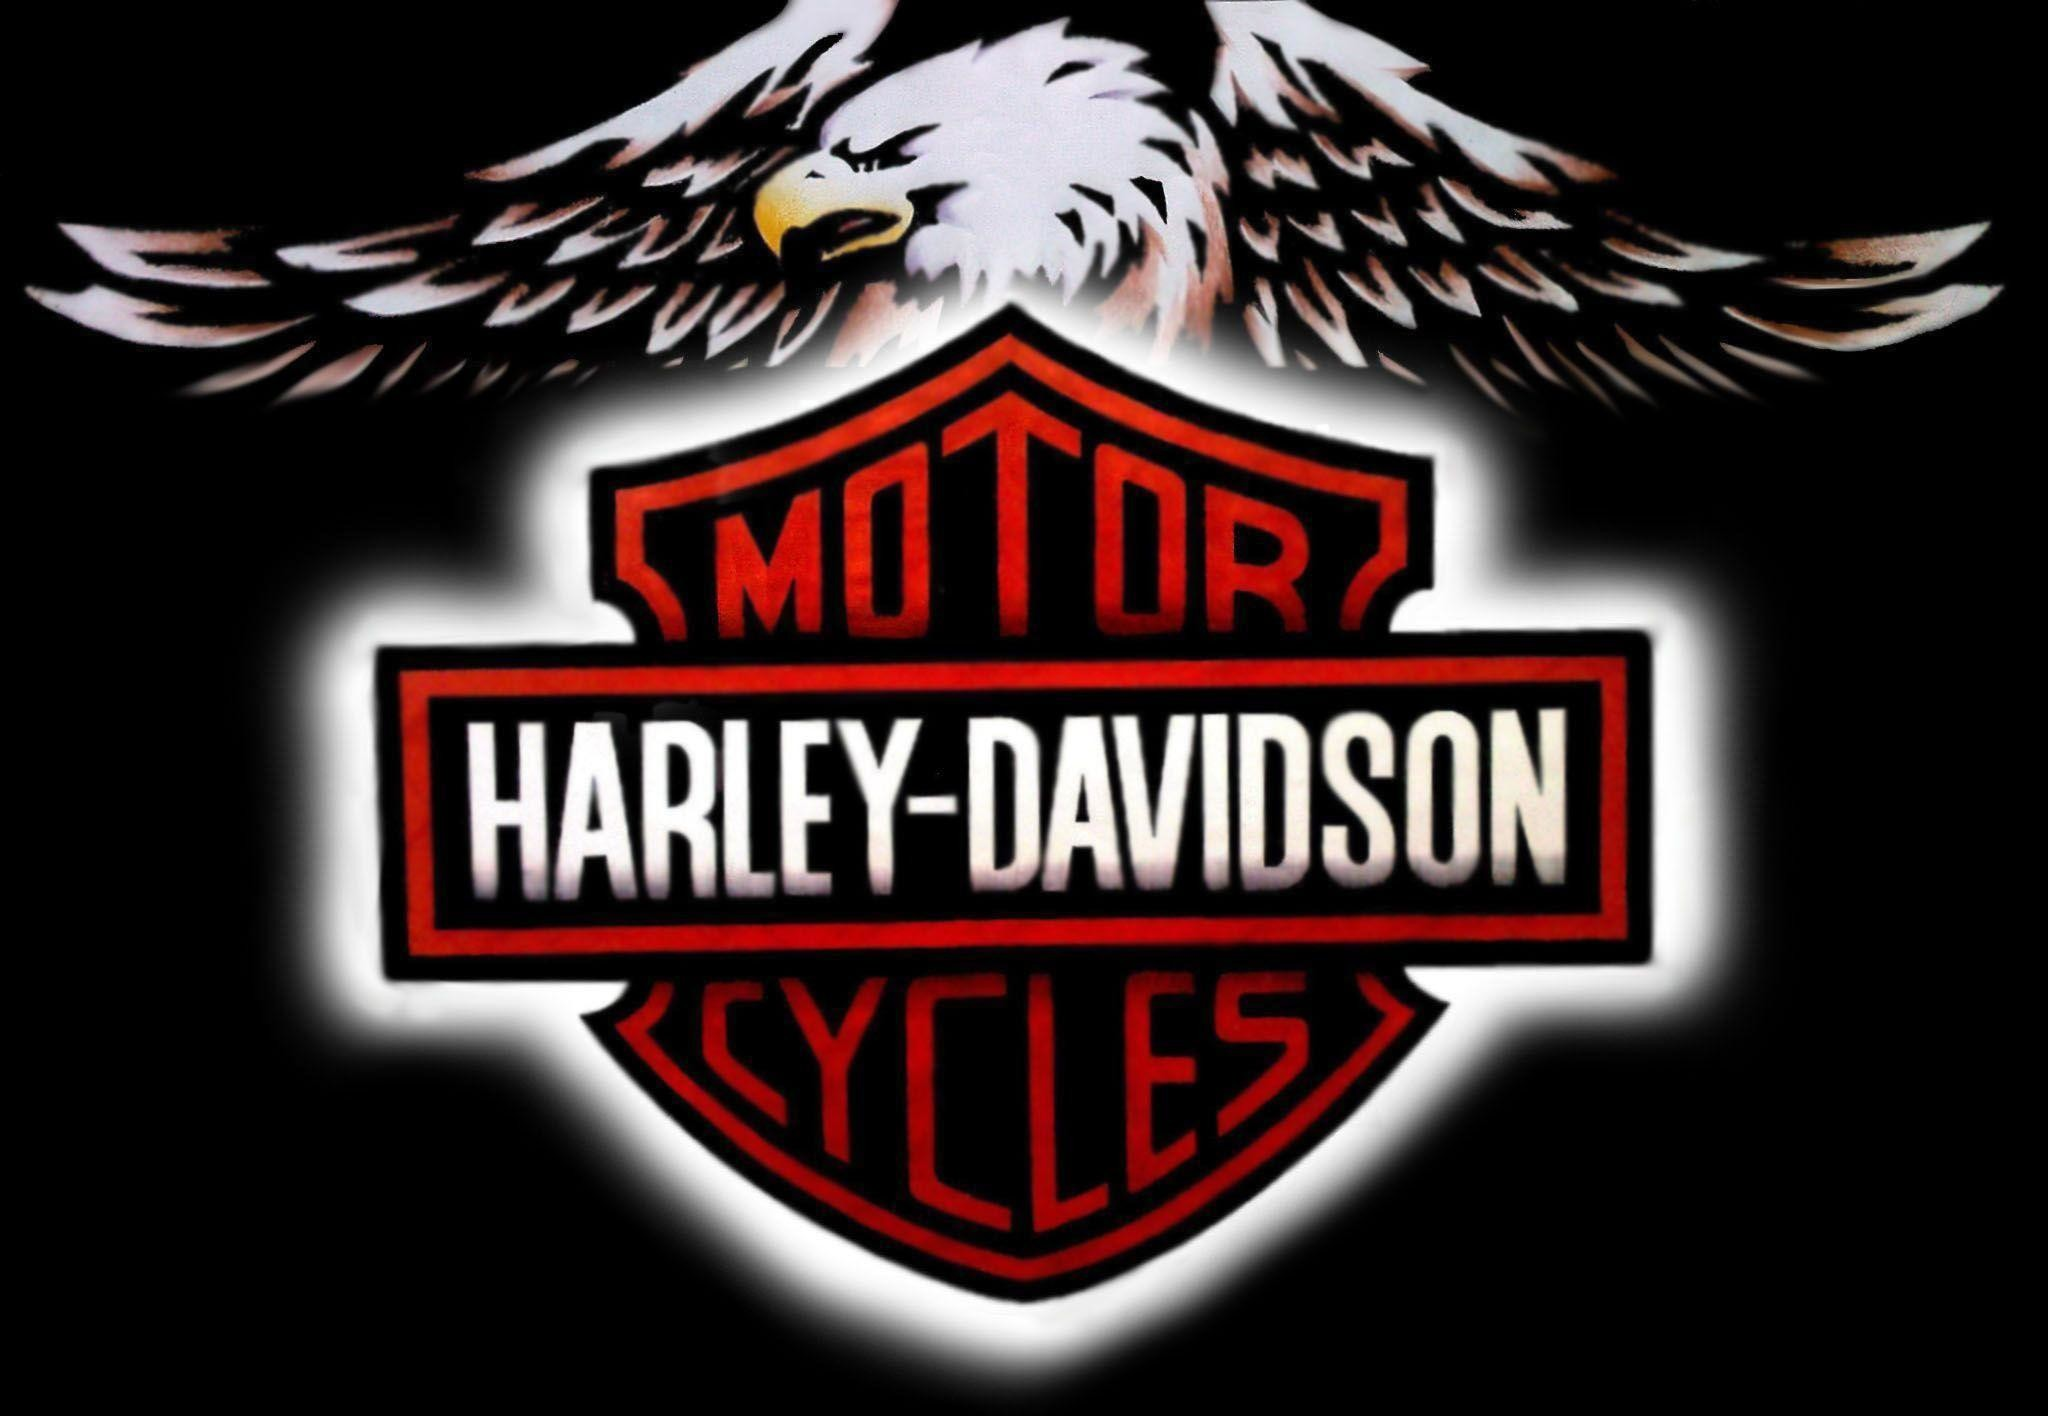 Harley davidson desktop wallpaper 72 images 2048x1365 motorcycles wallpapers harley davidson wallpapers download hd 19201200 wallpaper harley davidson 37 voltagebd Images